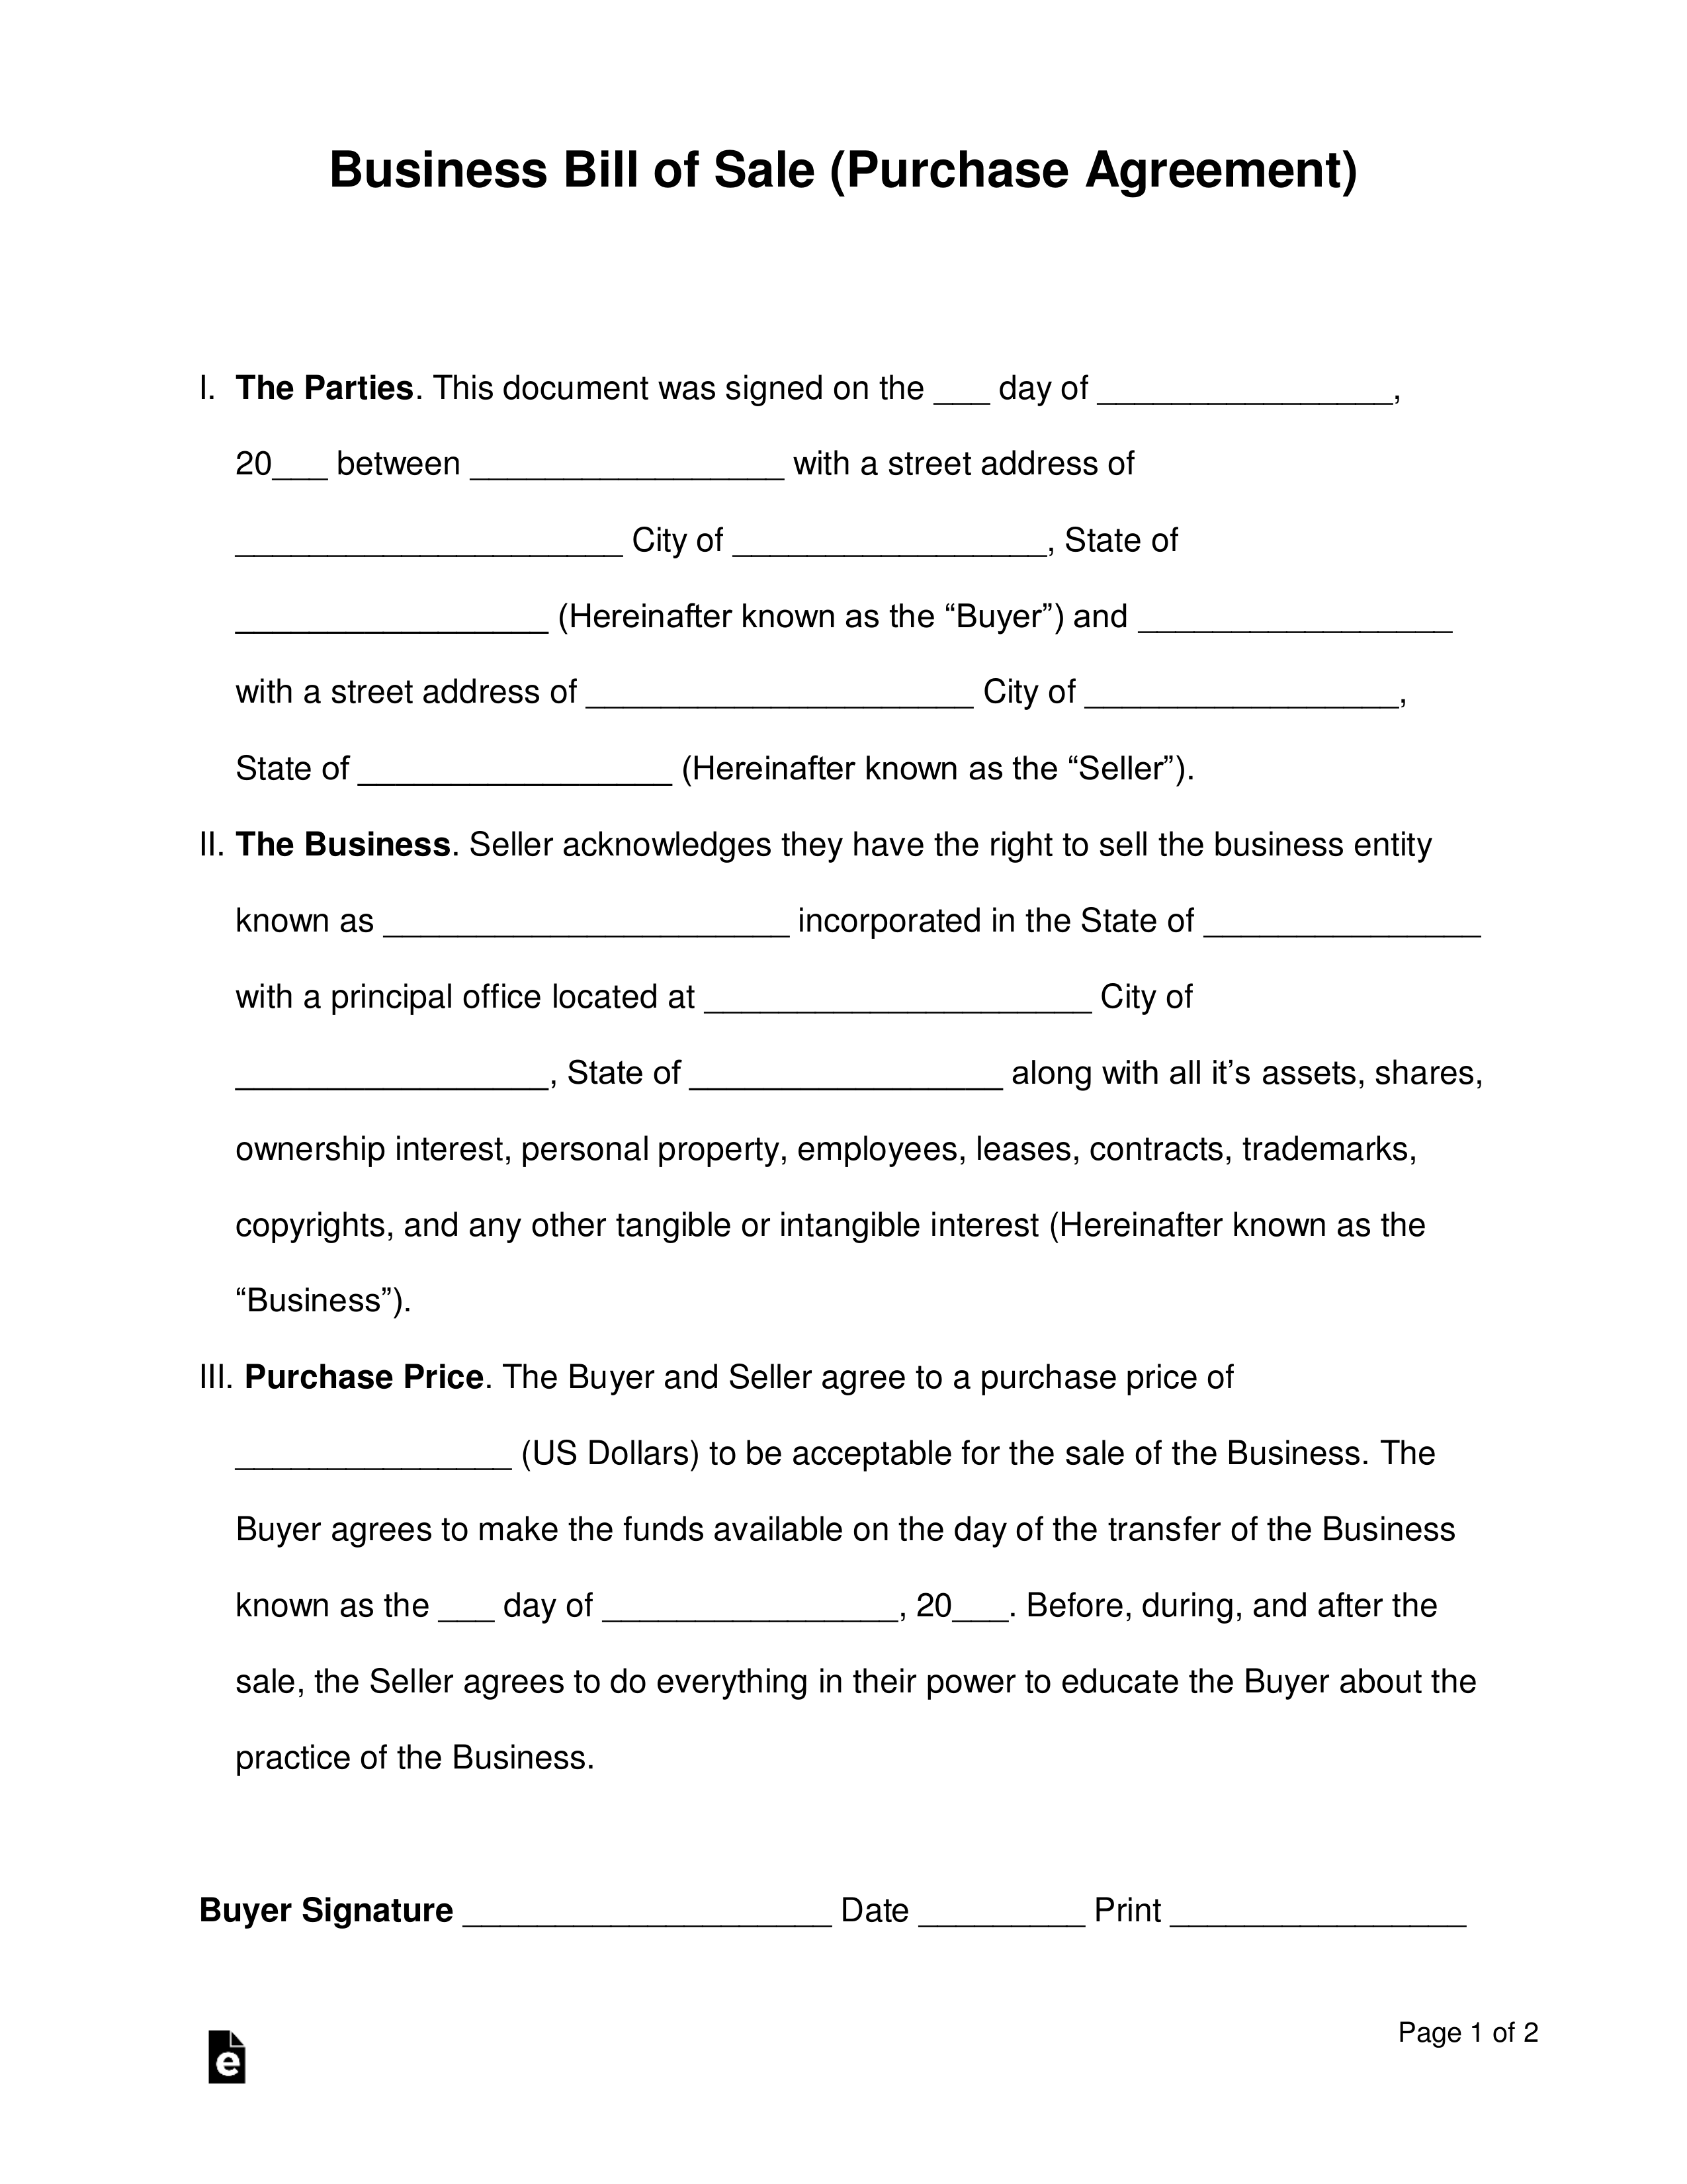 Free Business Bill Of Sale Form (Purchase Agreement) - Word